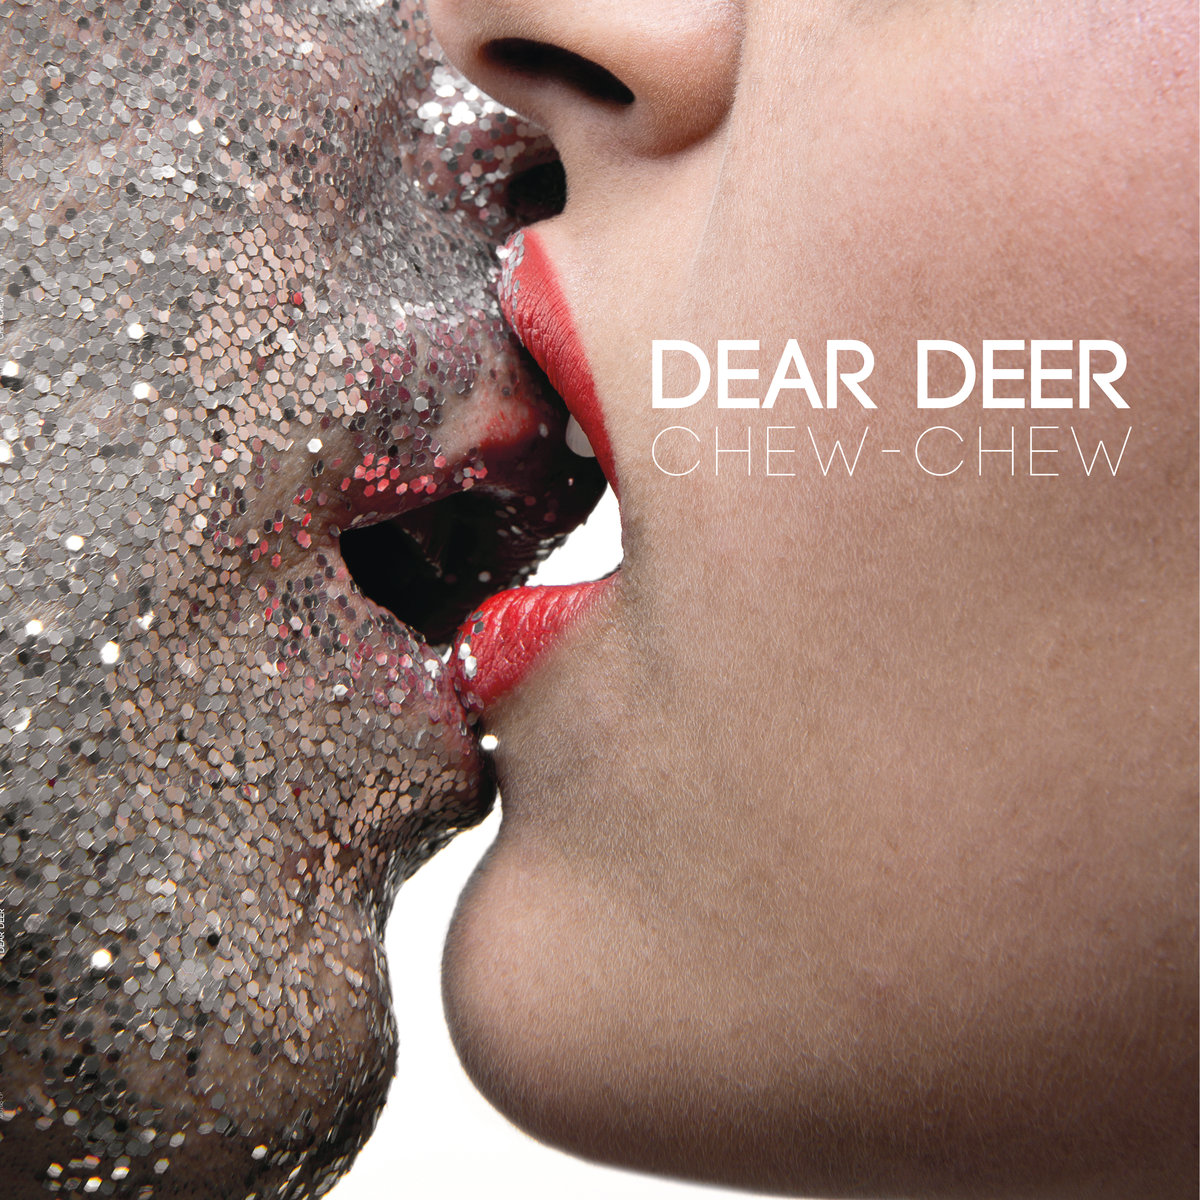 News – Dear Deer – Chew-chew